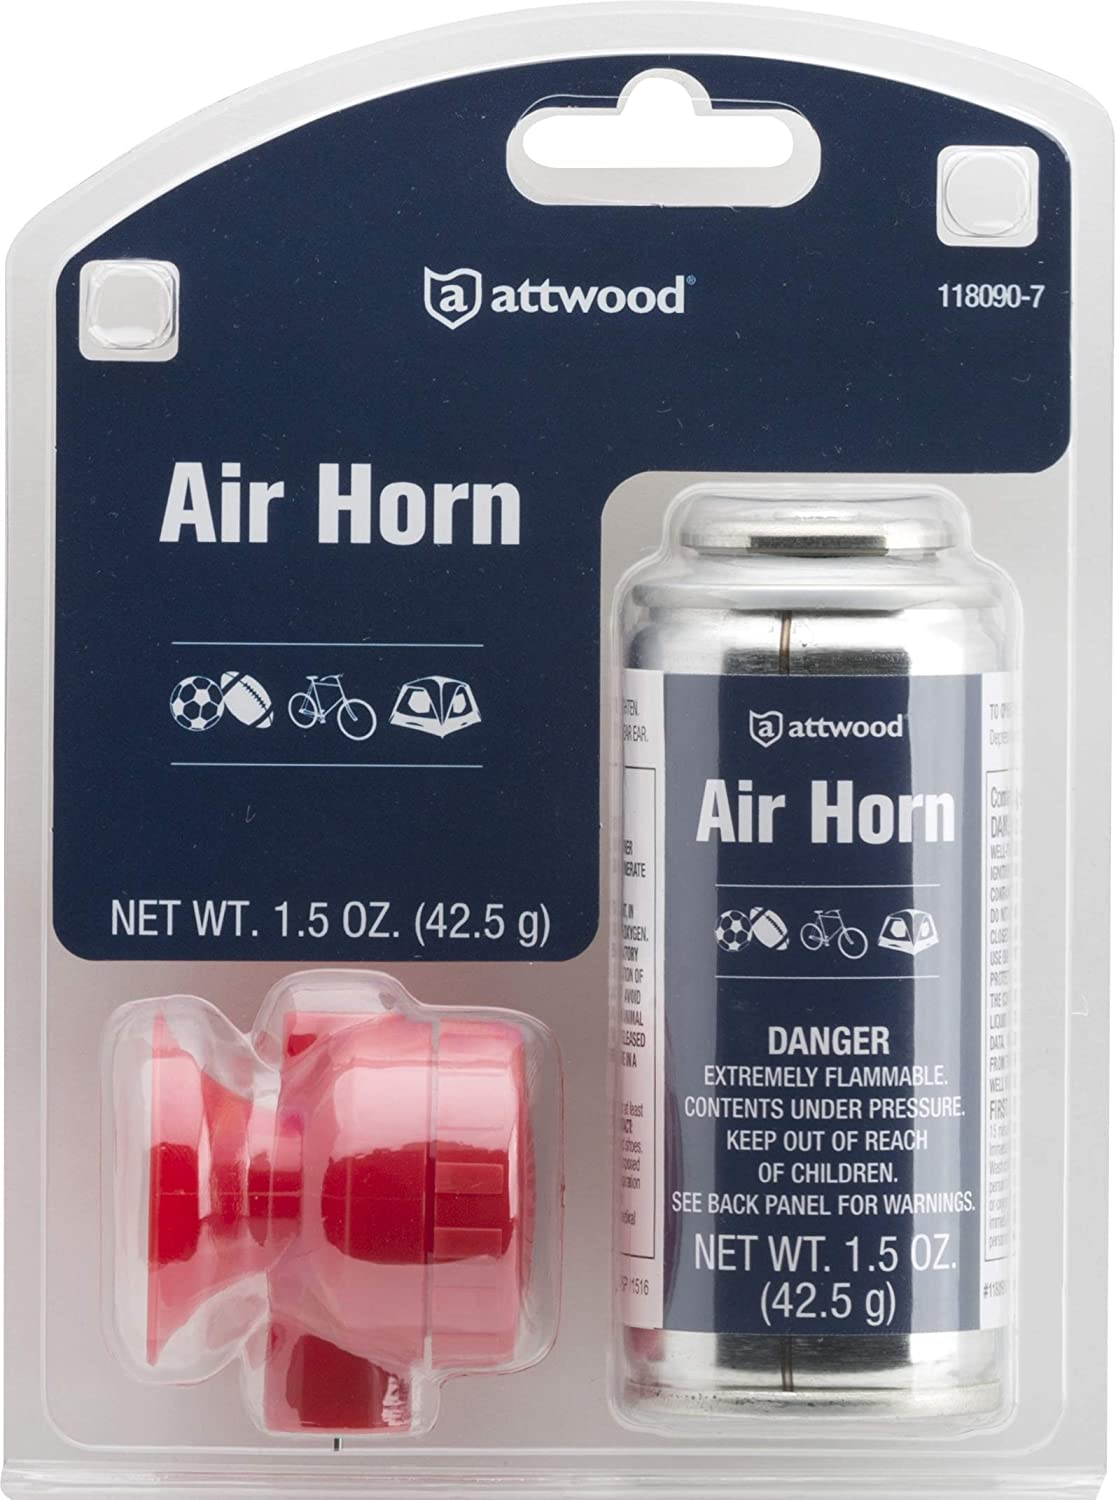 attwood 118090-7 Portable Boat Air Horn 1.5-oz : Sports & Outdoors